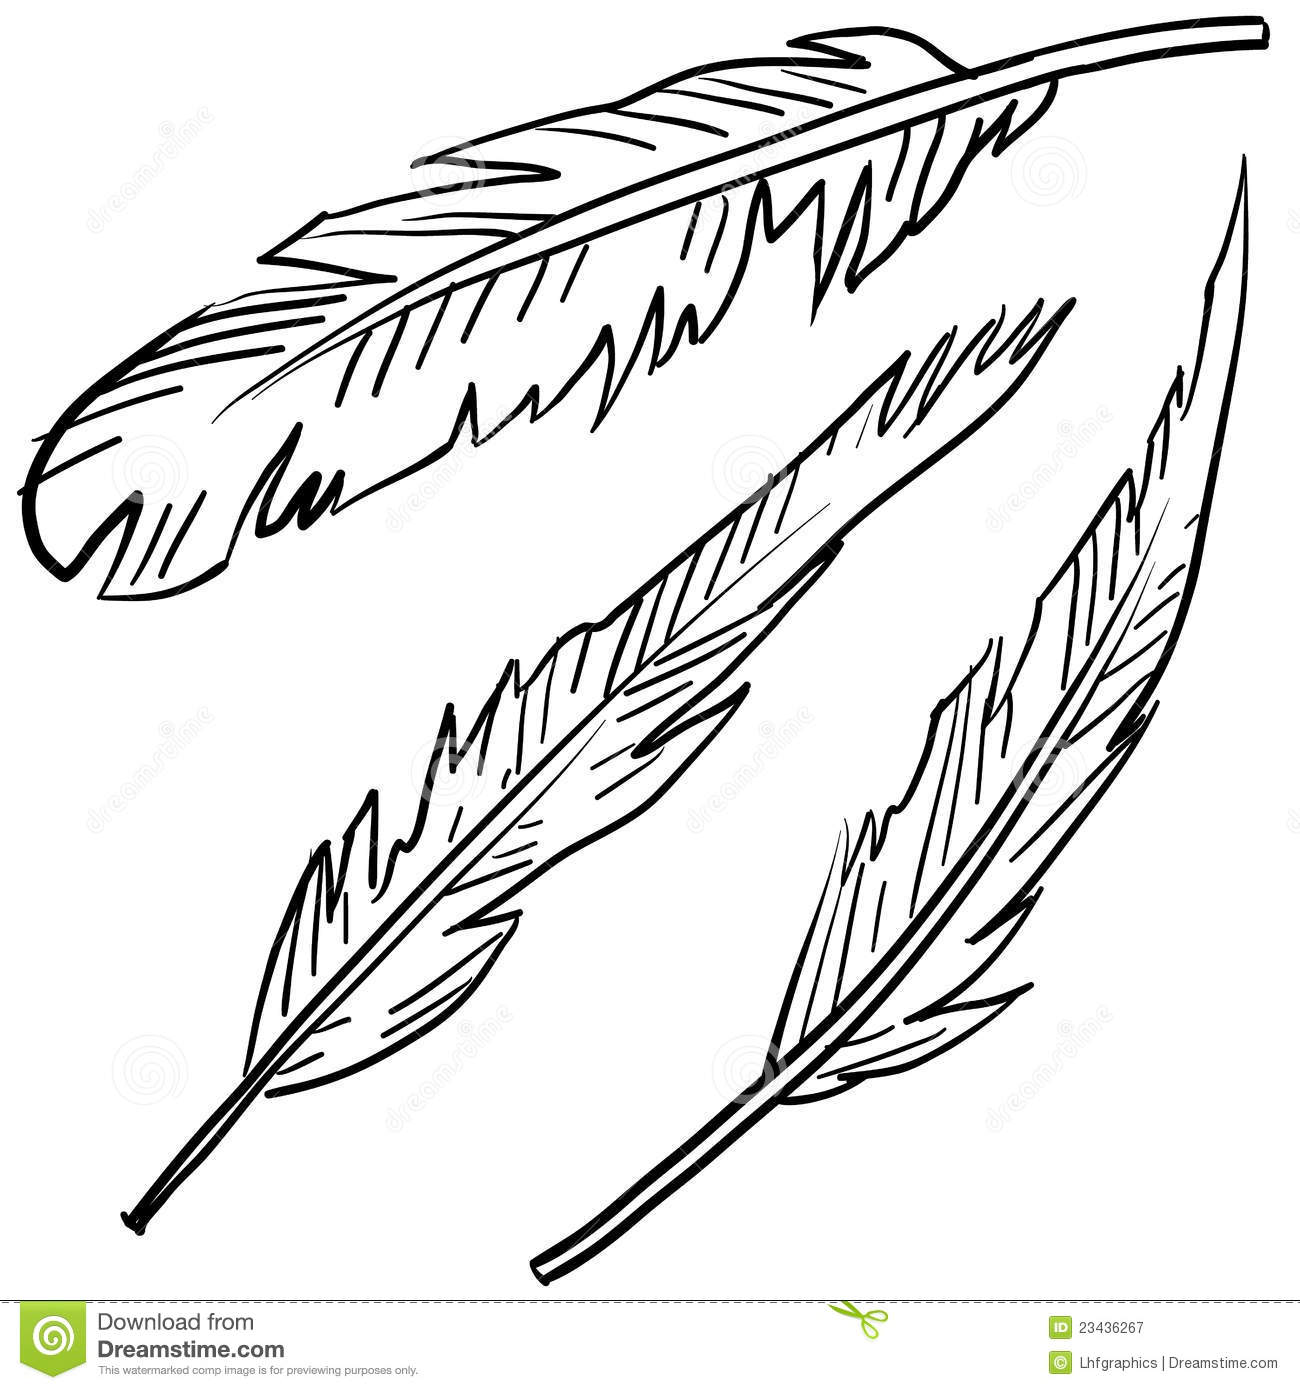 Avian Feathers Sketch Royalty Free Stock Photography - Image: 23436267